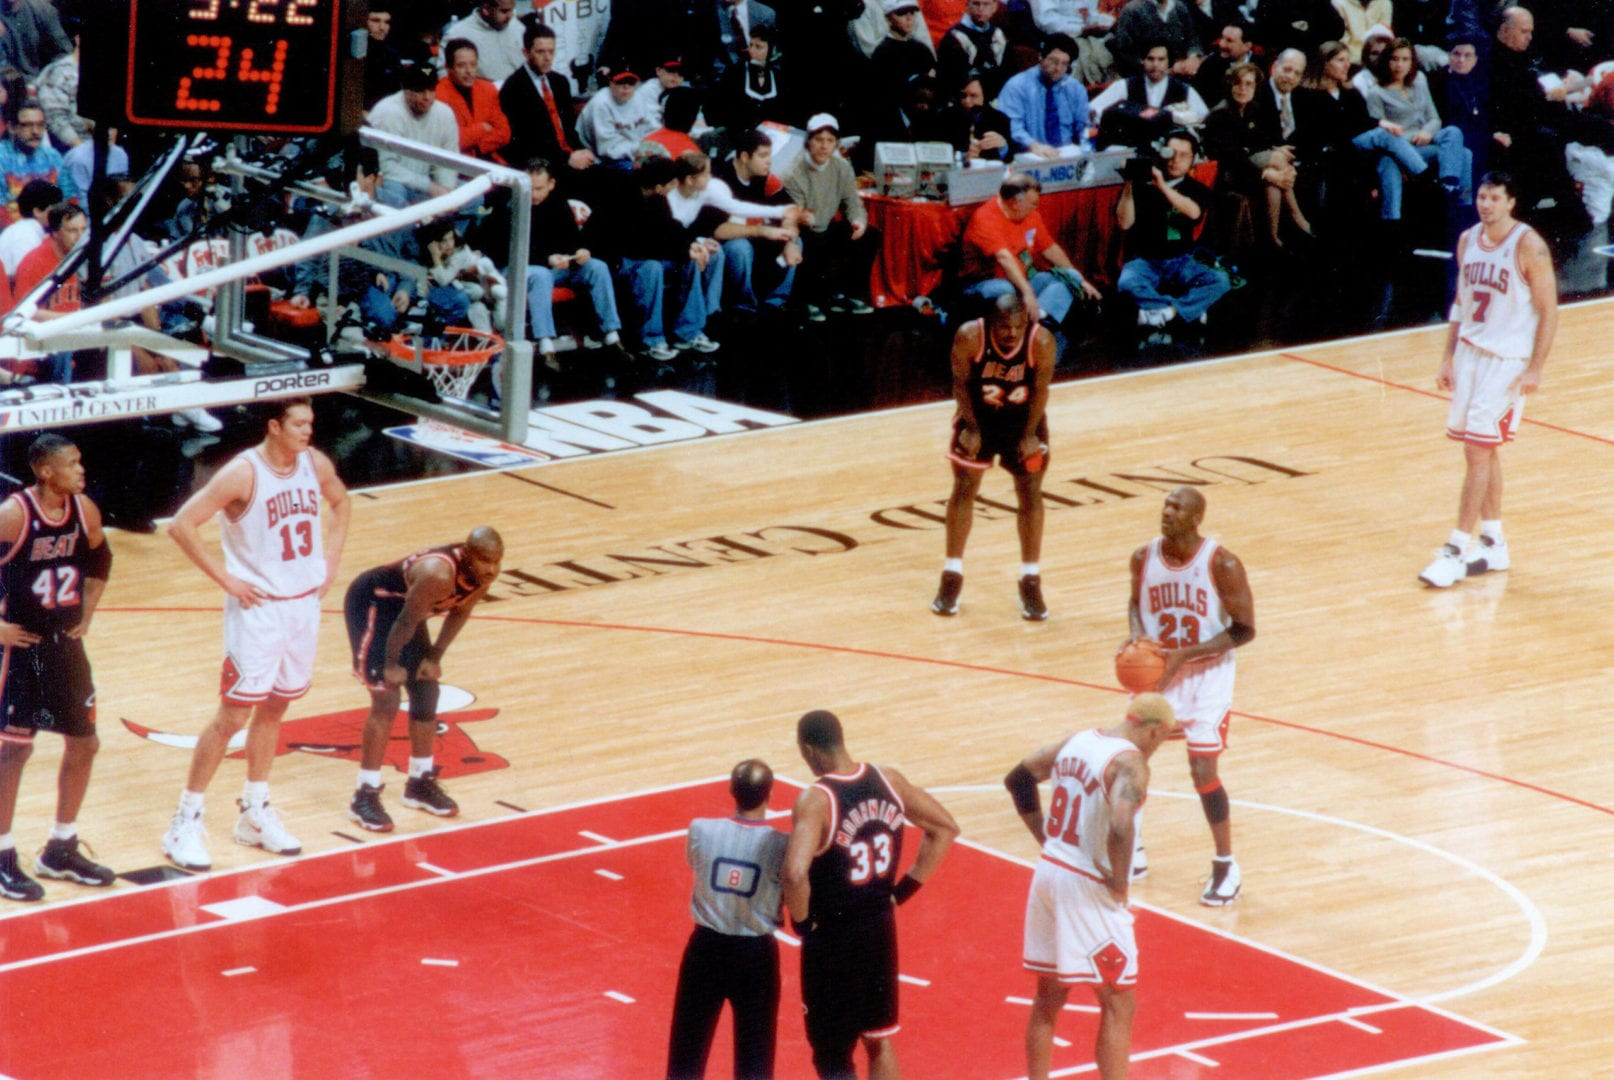 Free throw for MJ